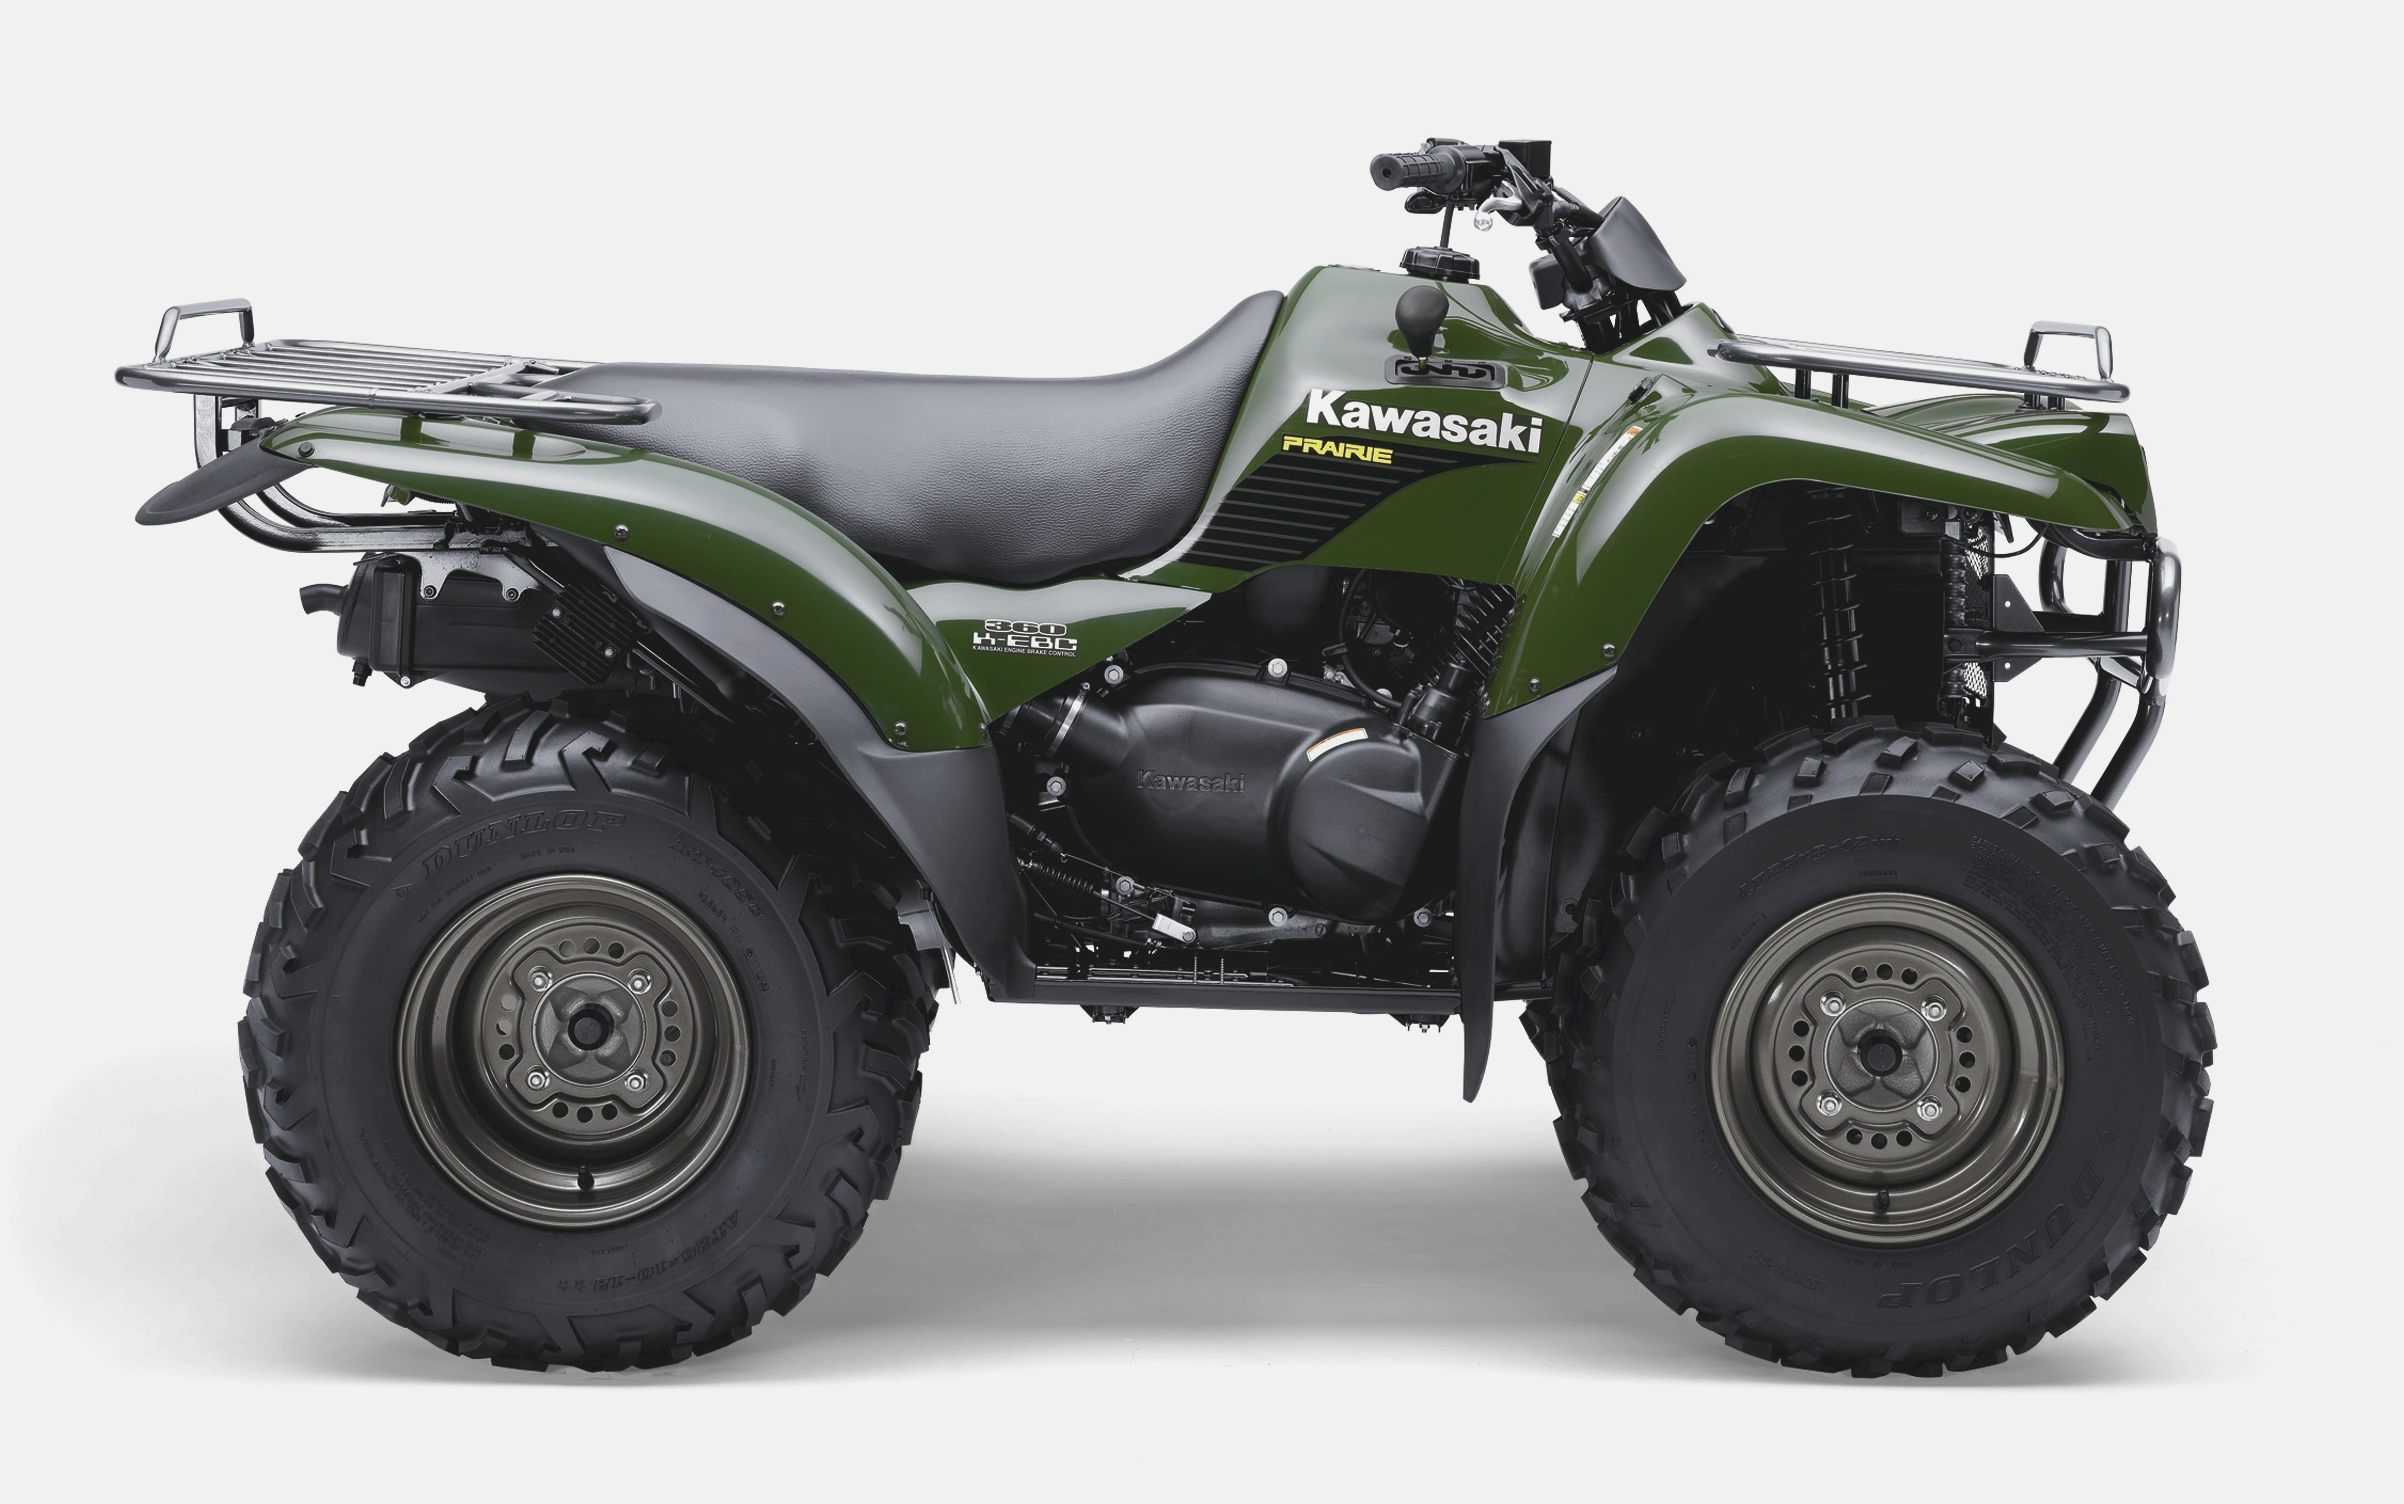 Kawasaki Brute Force 650 4x4 2011 images #86185